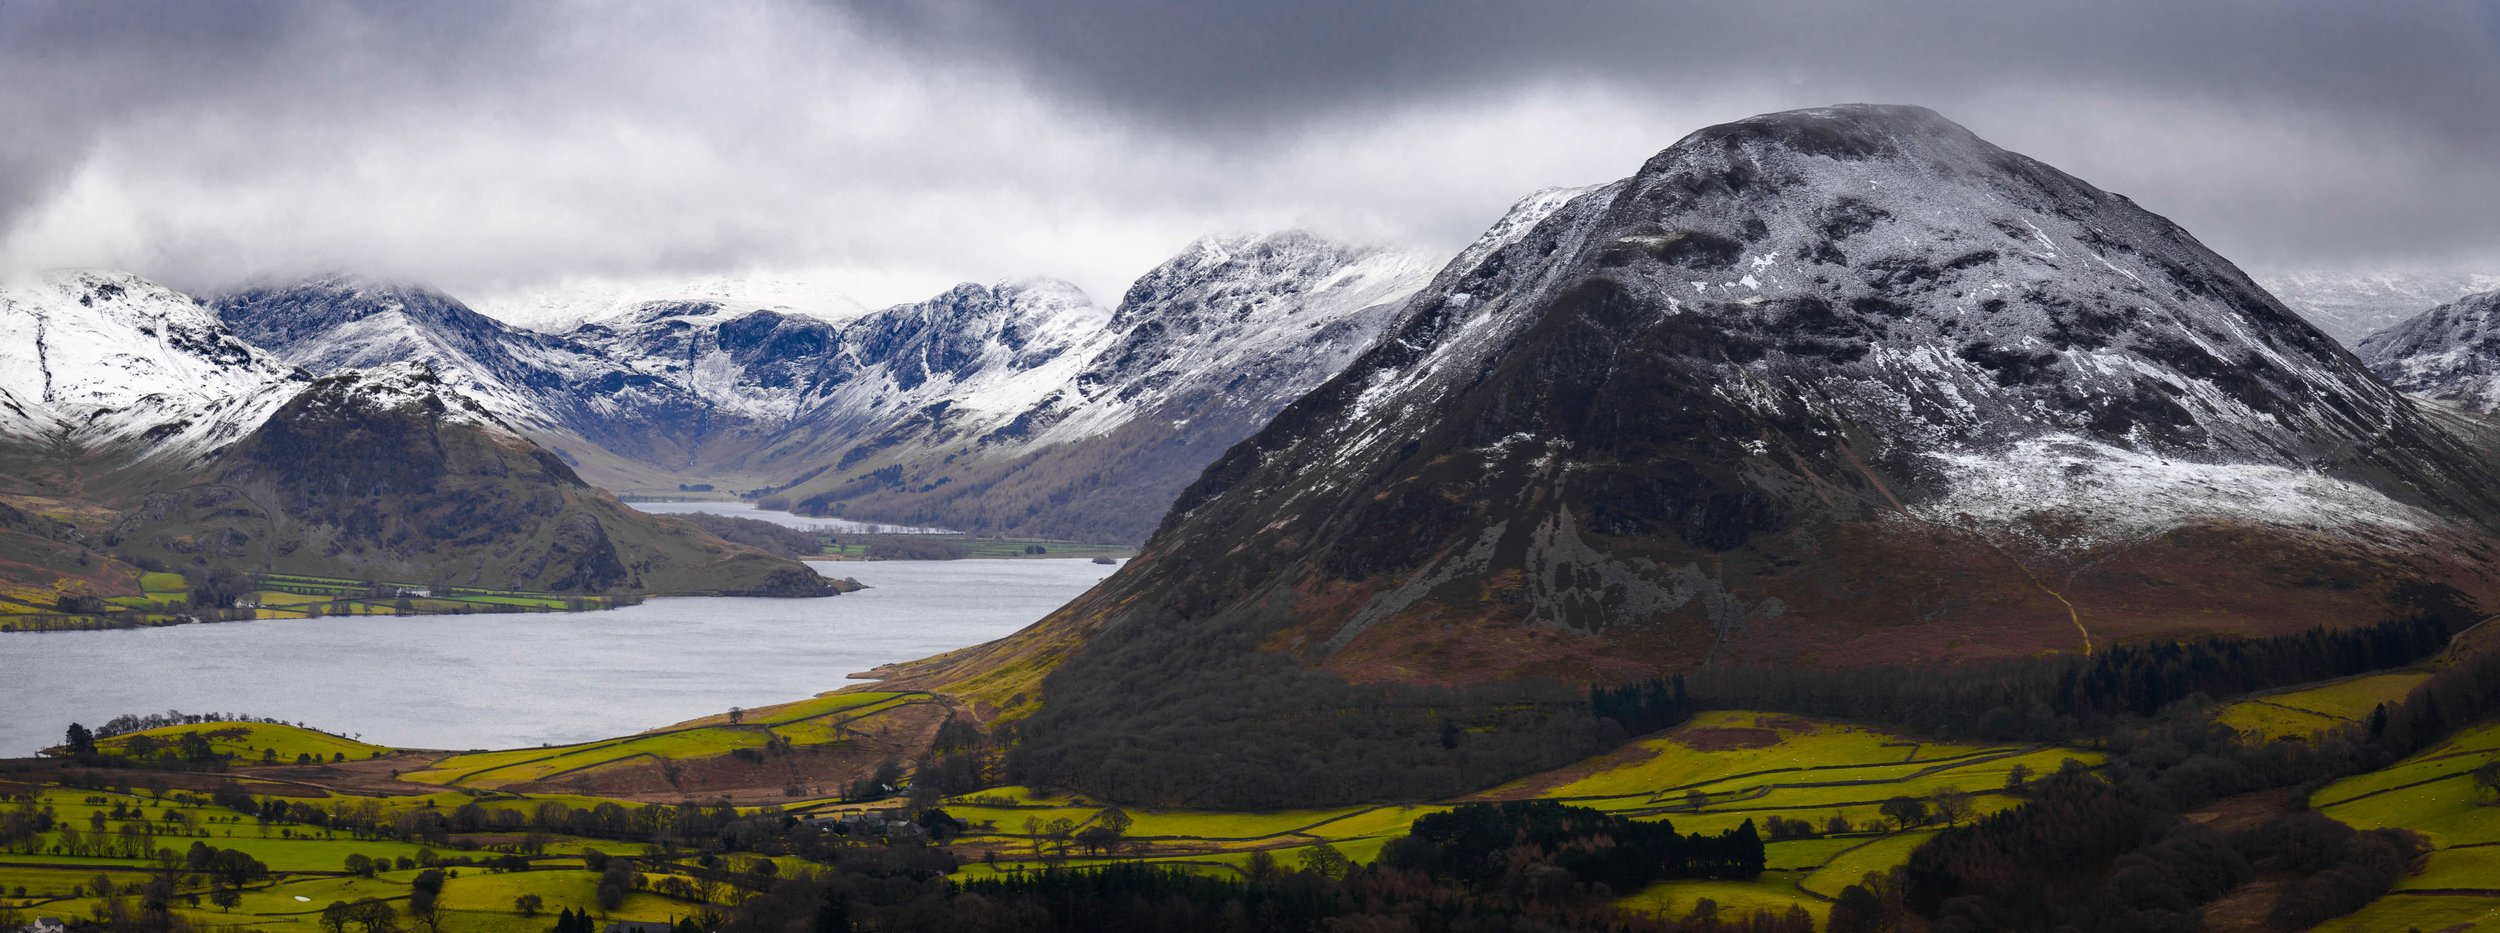 Mellbreak and Crummock Water